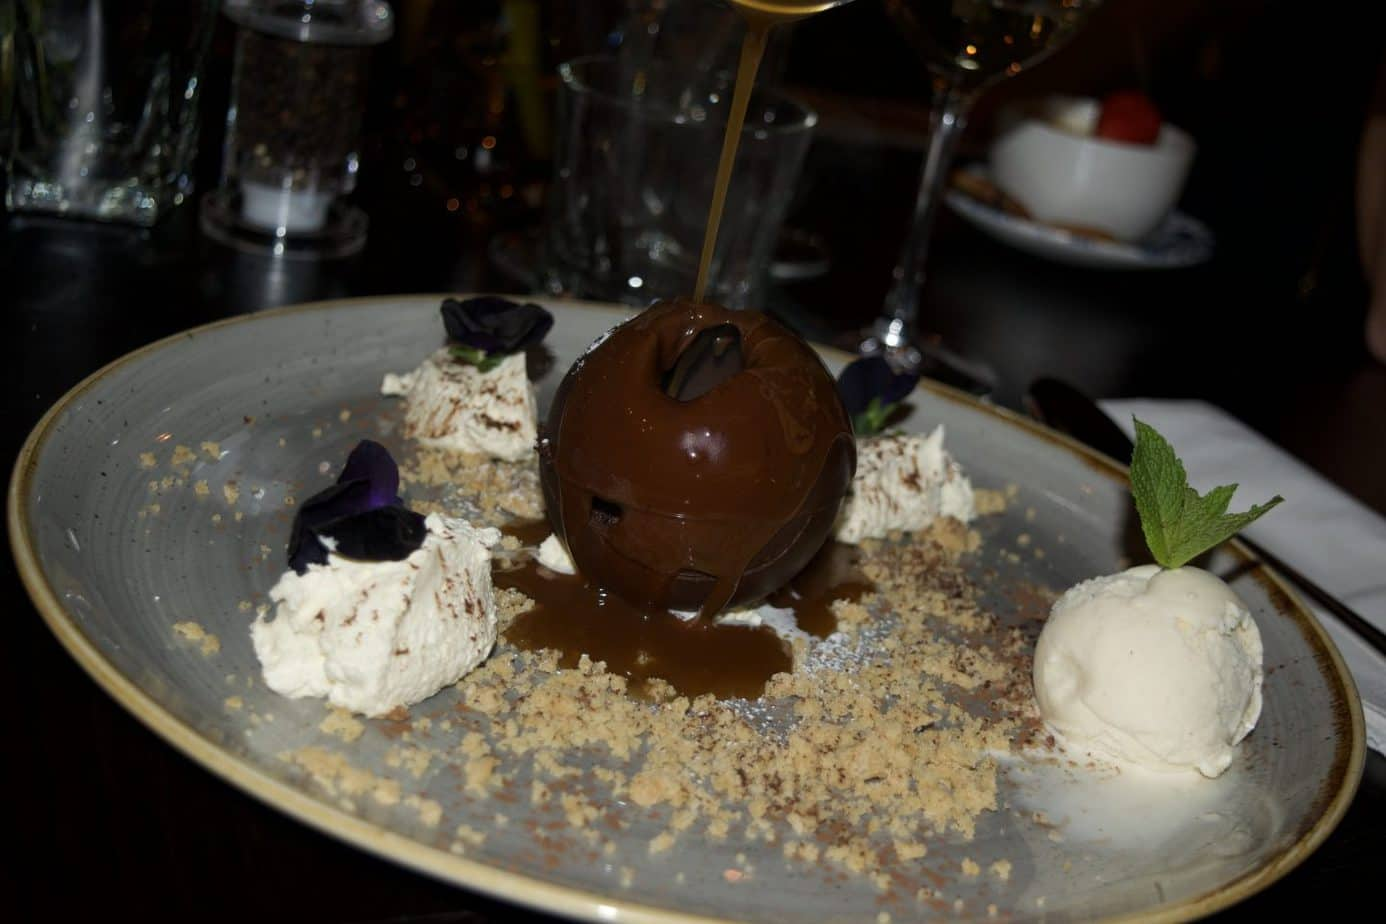 Melting chocolate and peanut bomb at the green house pub in sutton coldfield